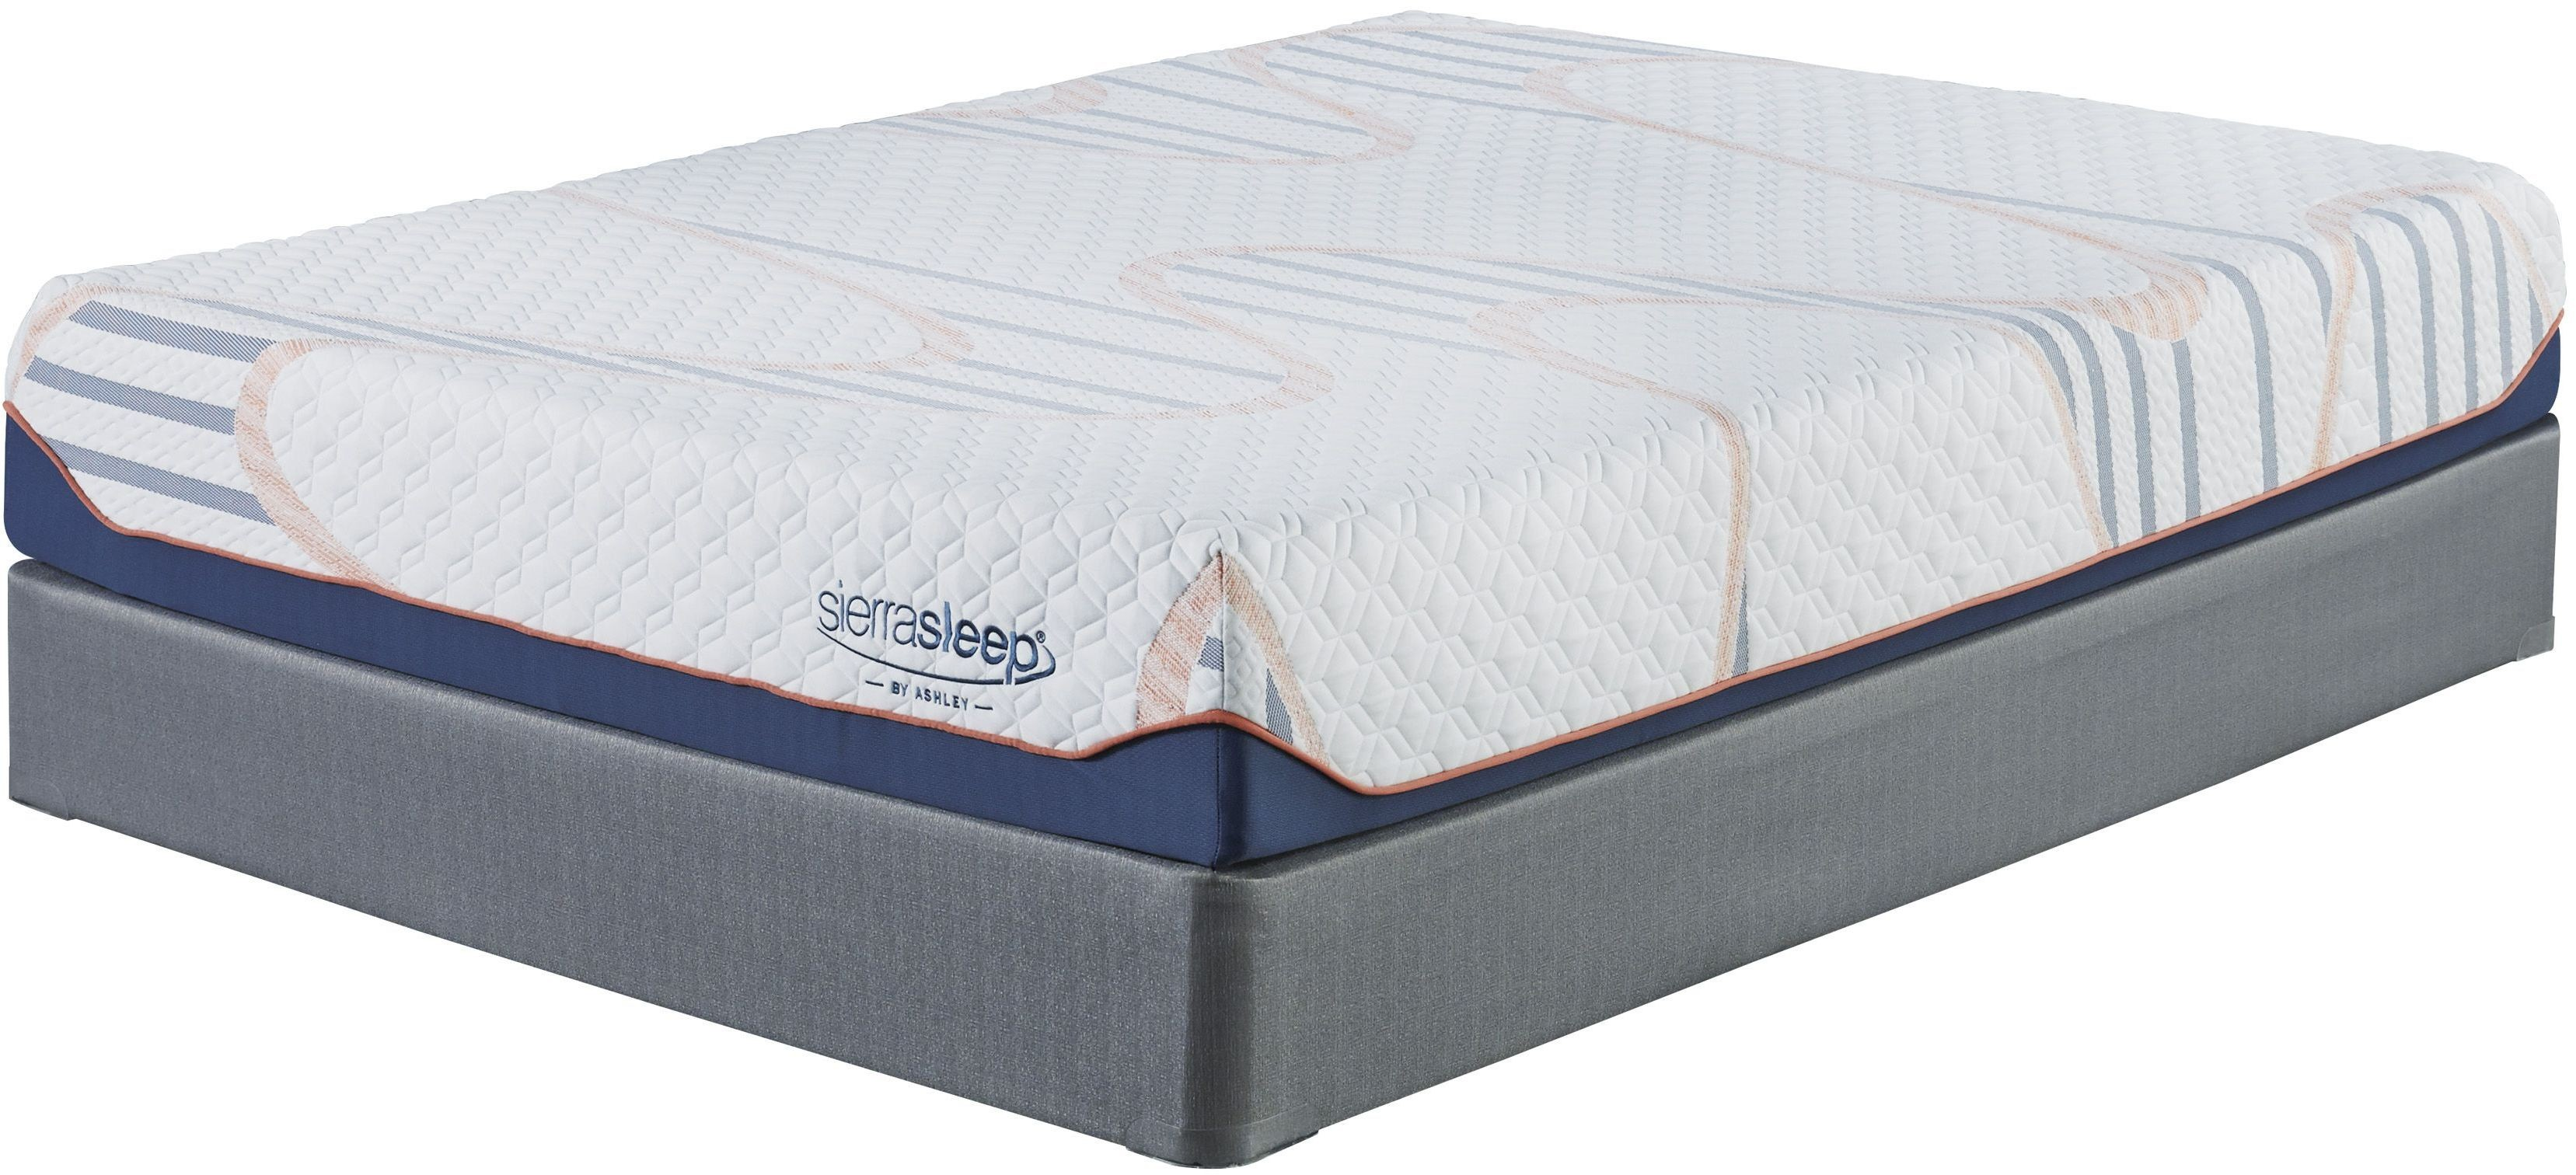 10 Inch Mygel White Twin Mattress From Ashley Coleman